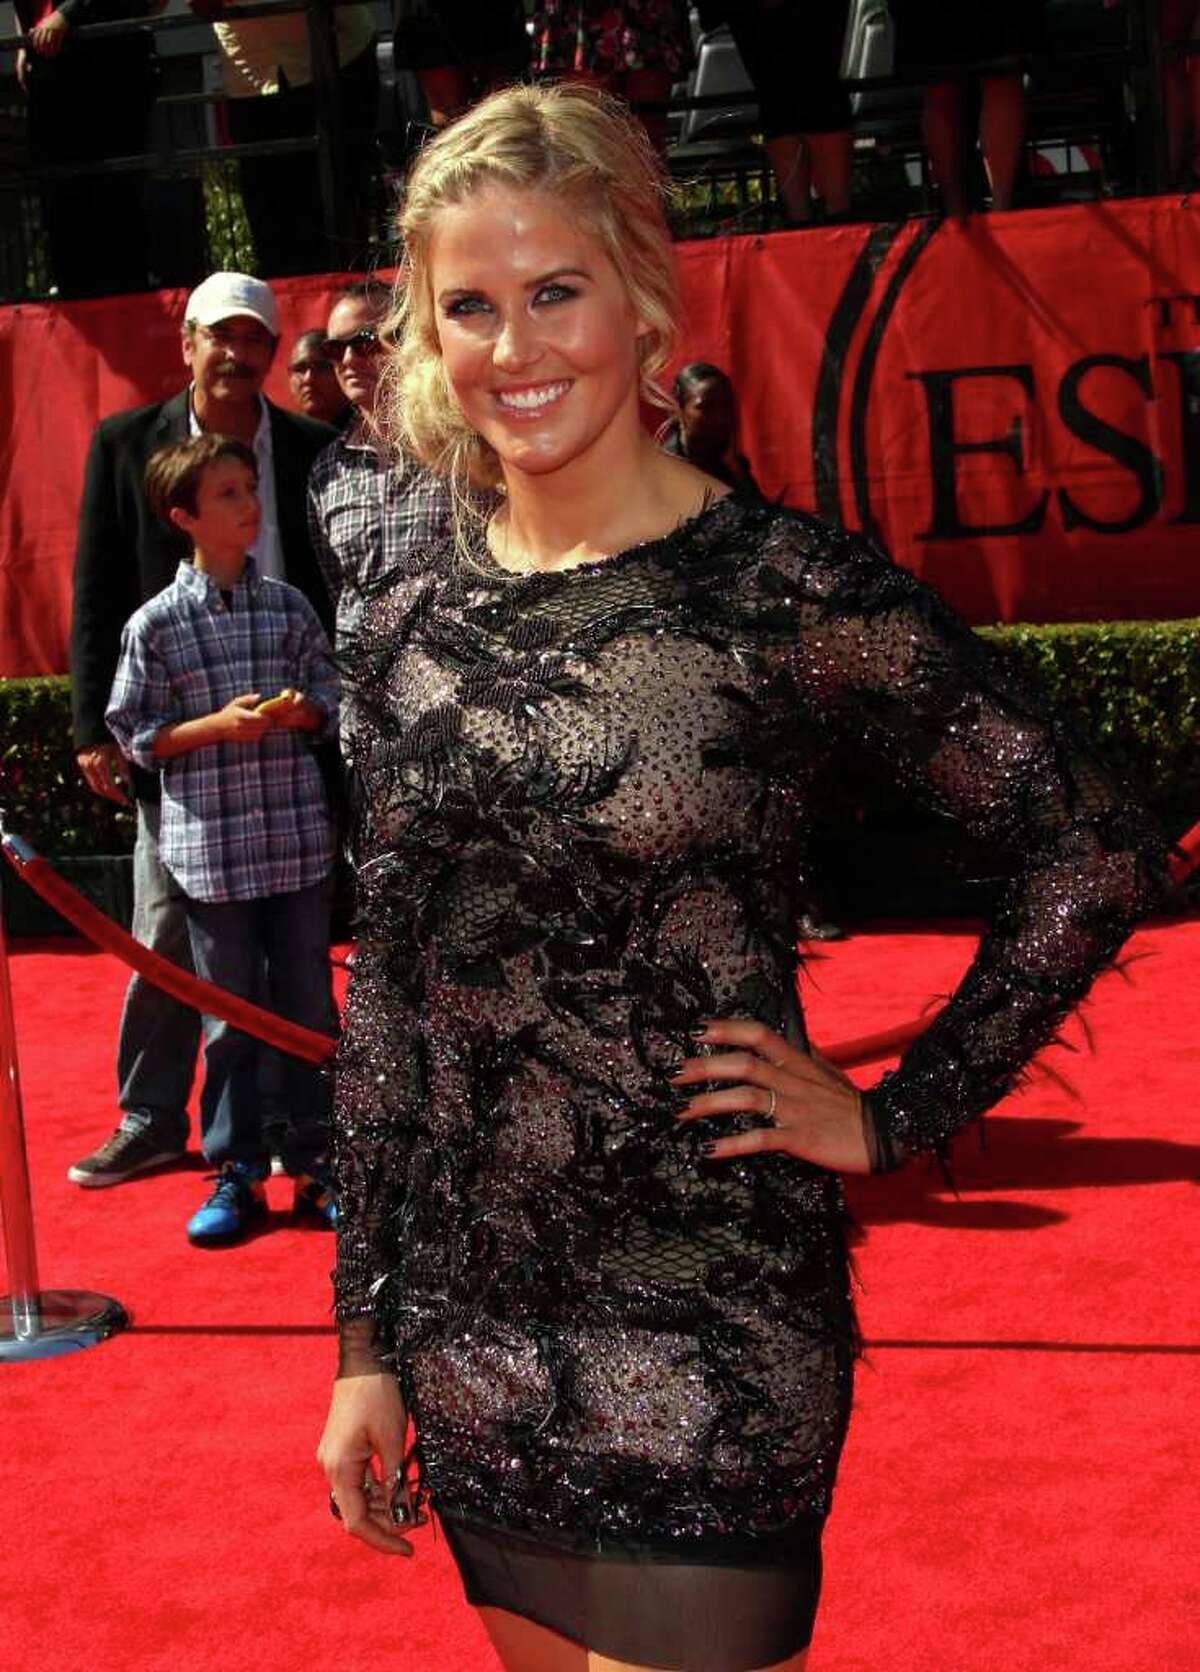 Sarah Burke: D Skier Sarah Burke's feathered and bejeweled dress looks like a reject from the